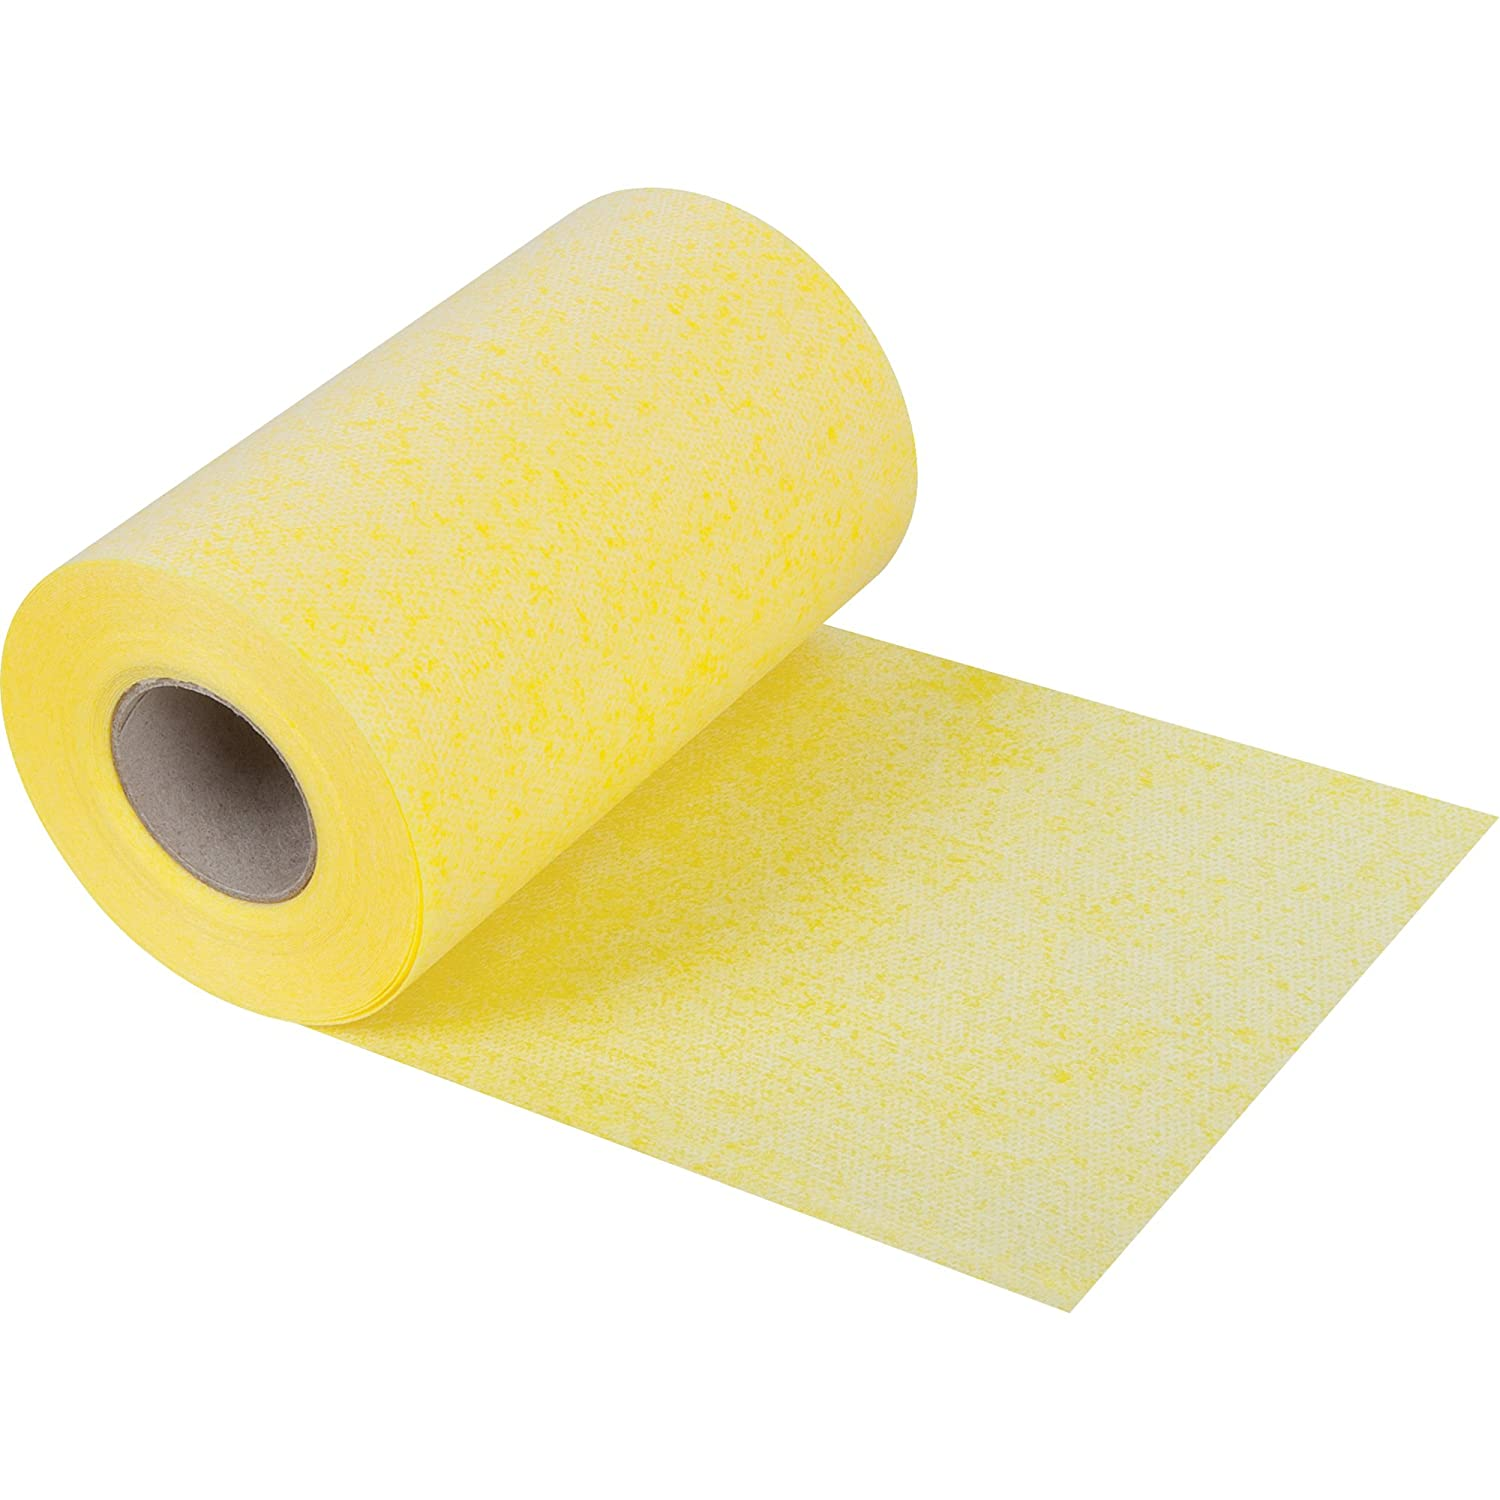 Homelux D LUX Gold HDURA STR 10US 33 ft. Crack Suppression and Isolation Joint Tape